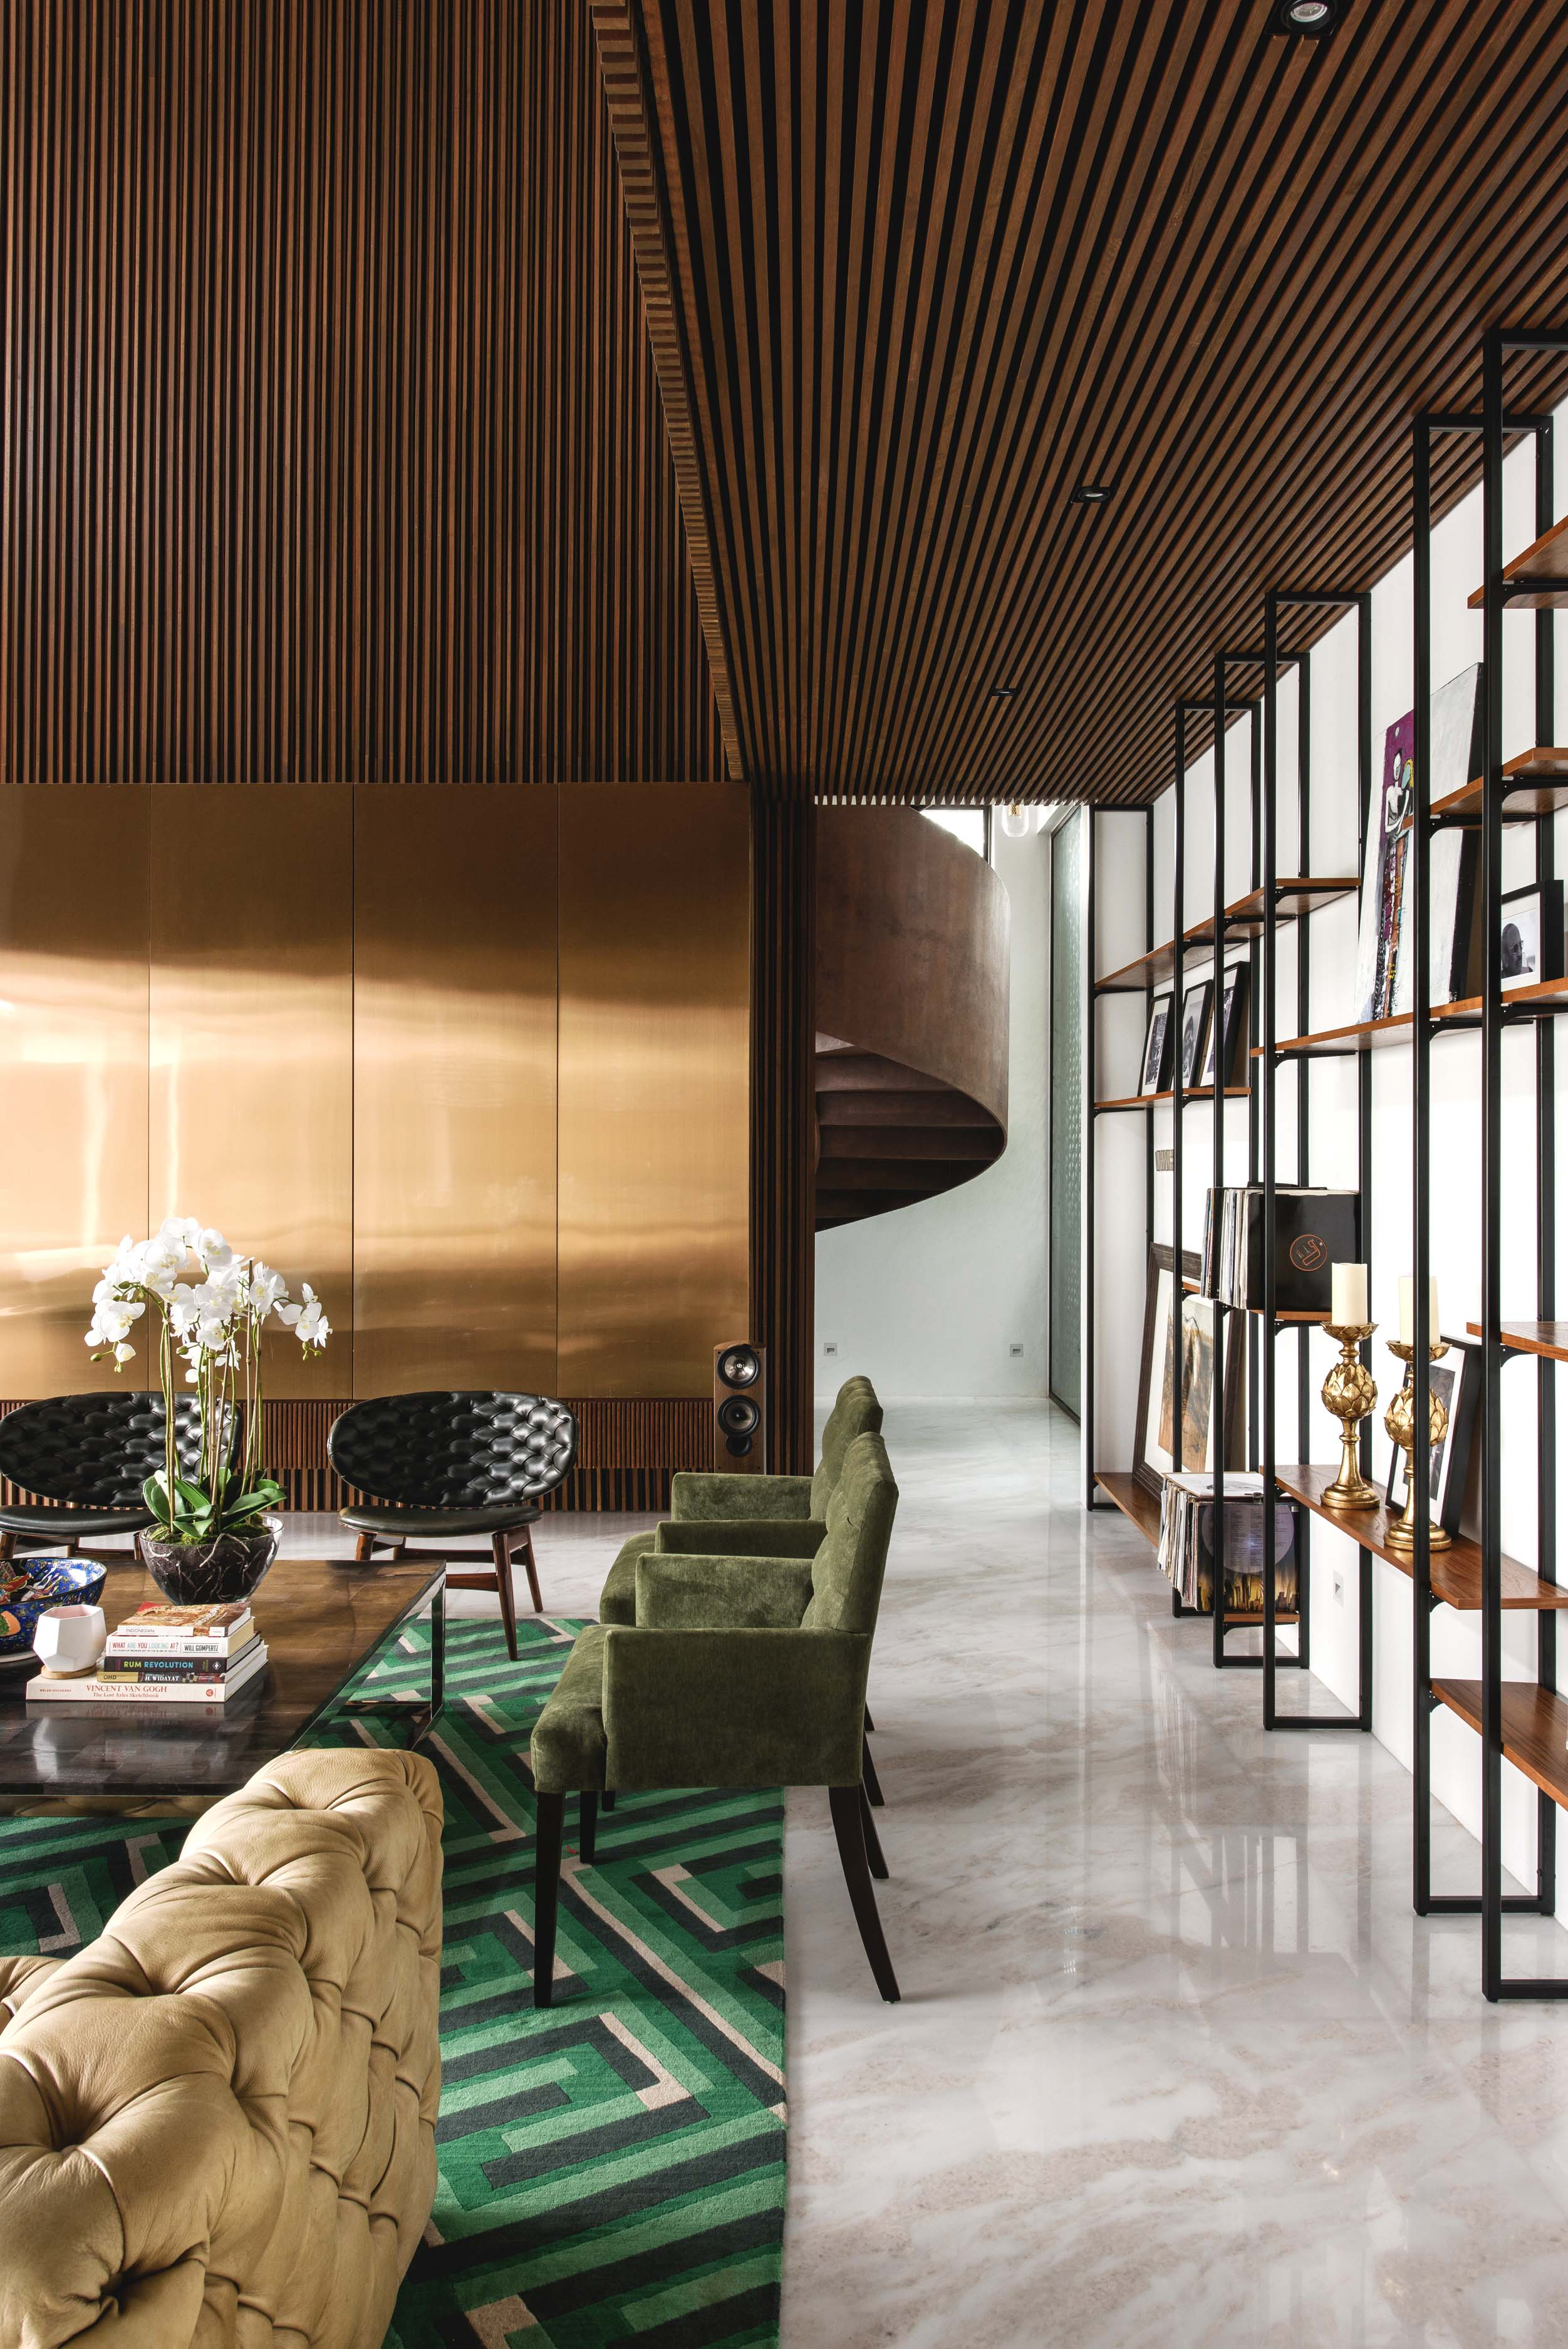 S/LAB 10 designs luxurious tropical living in Ledang